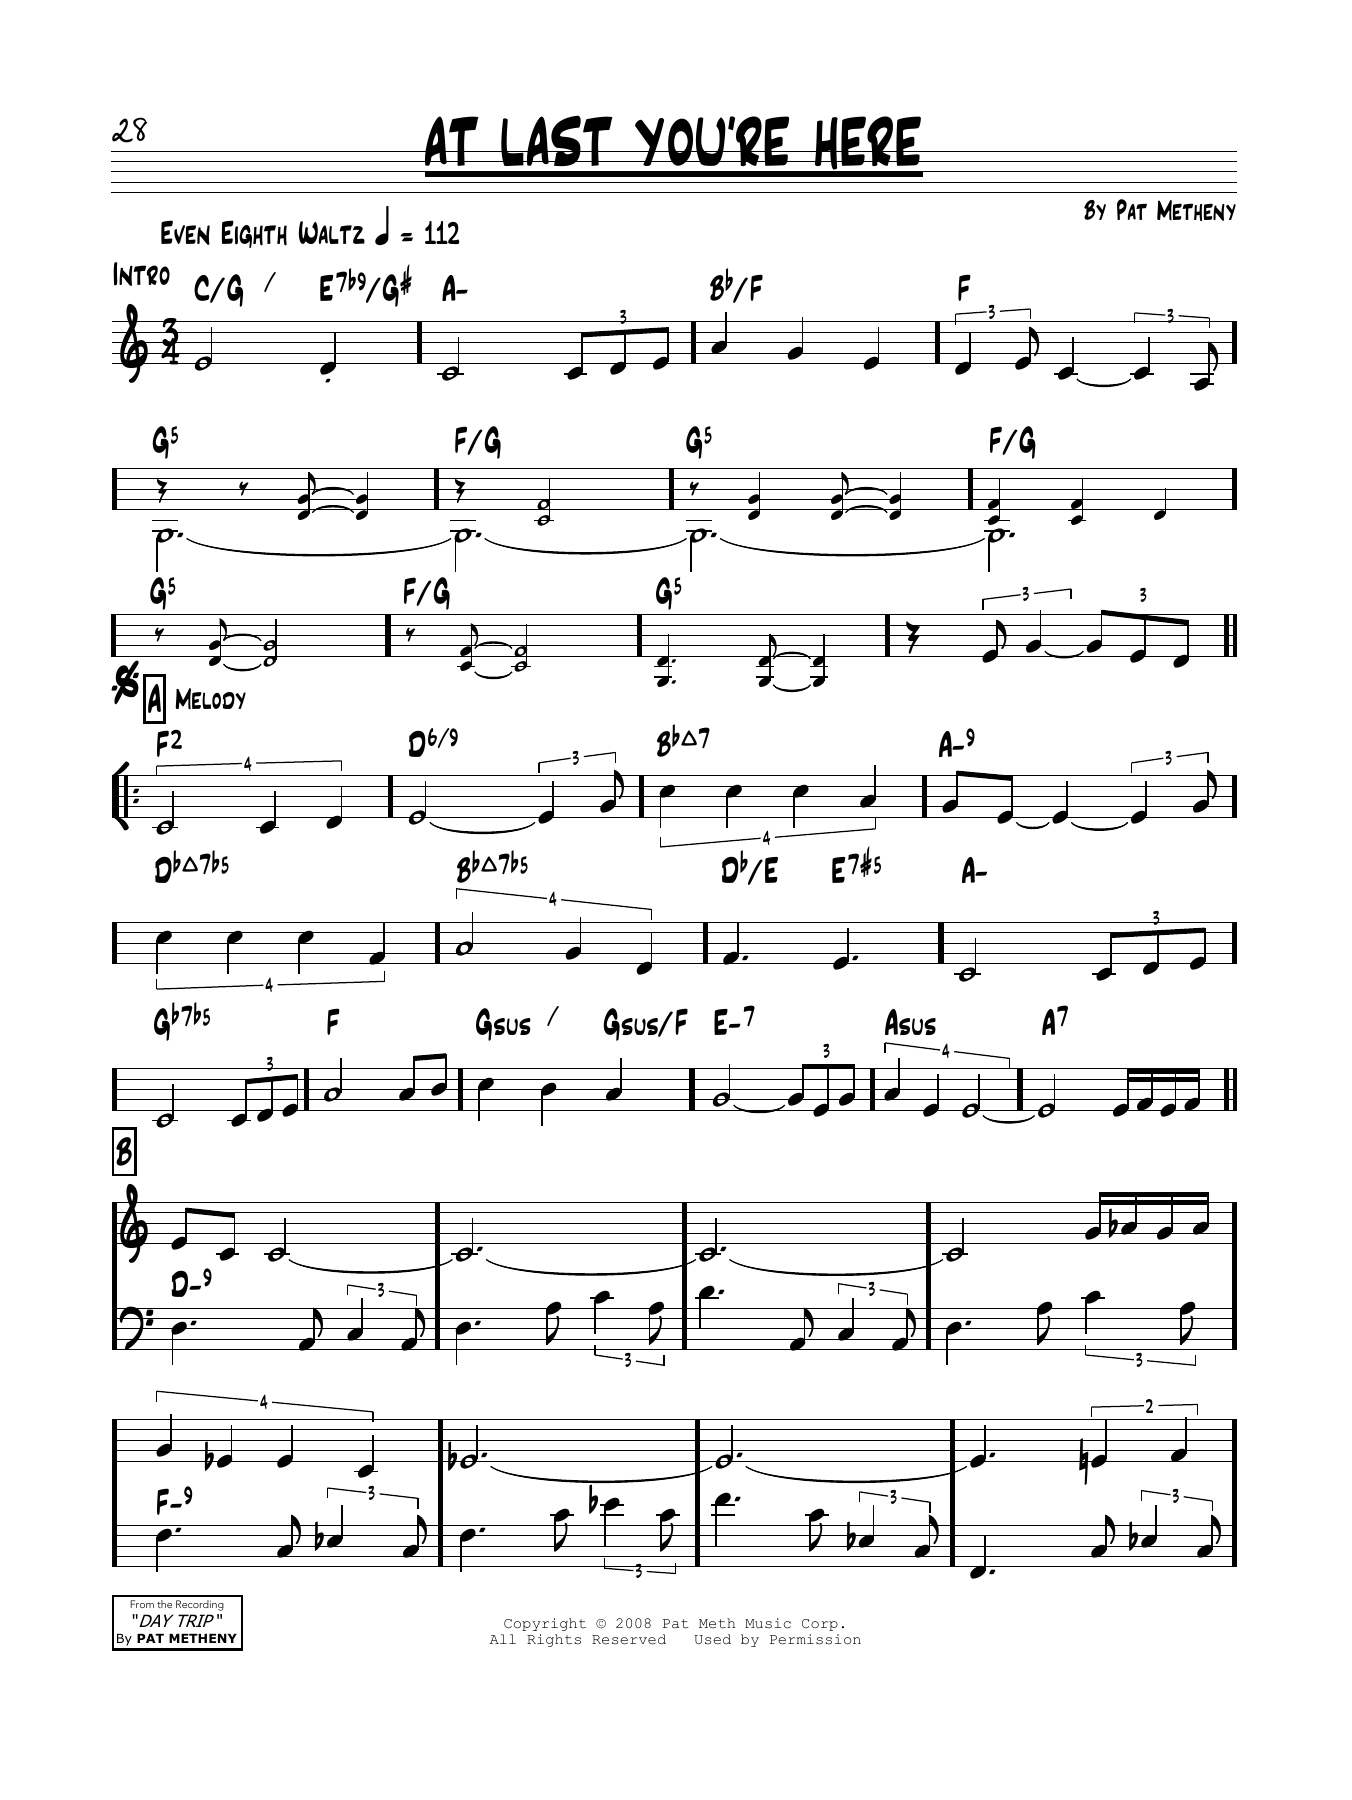 At Last You're Here Sheet Music